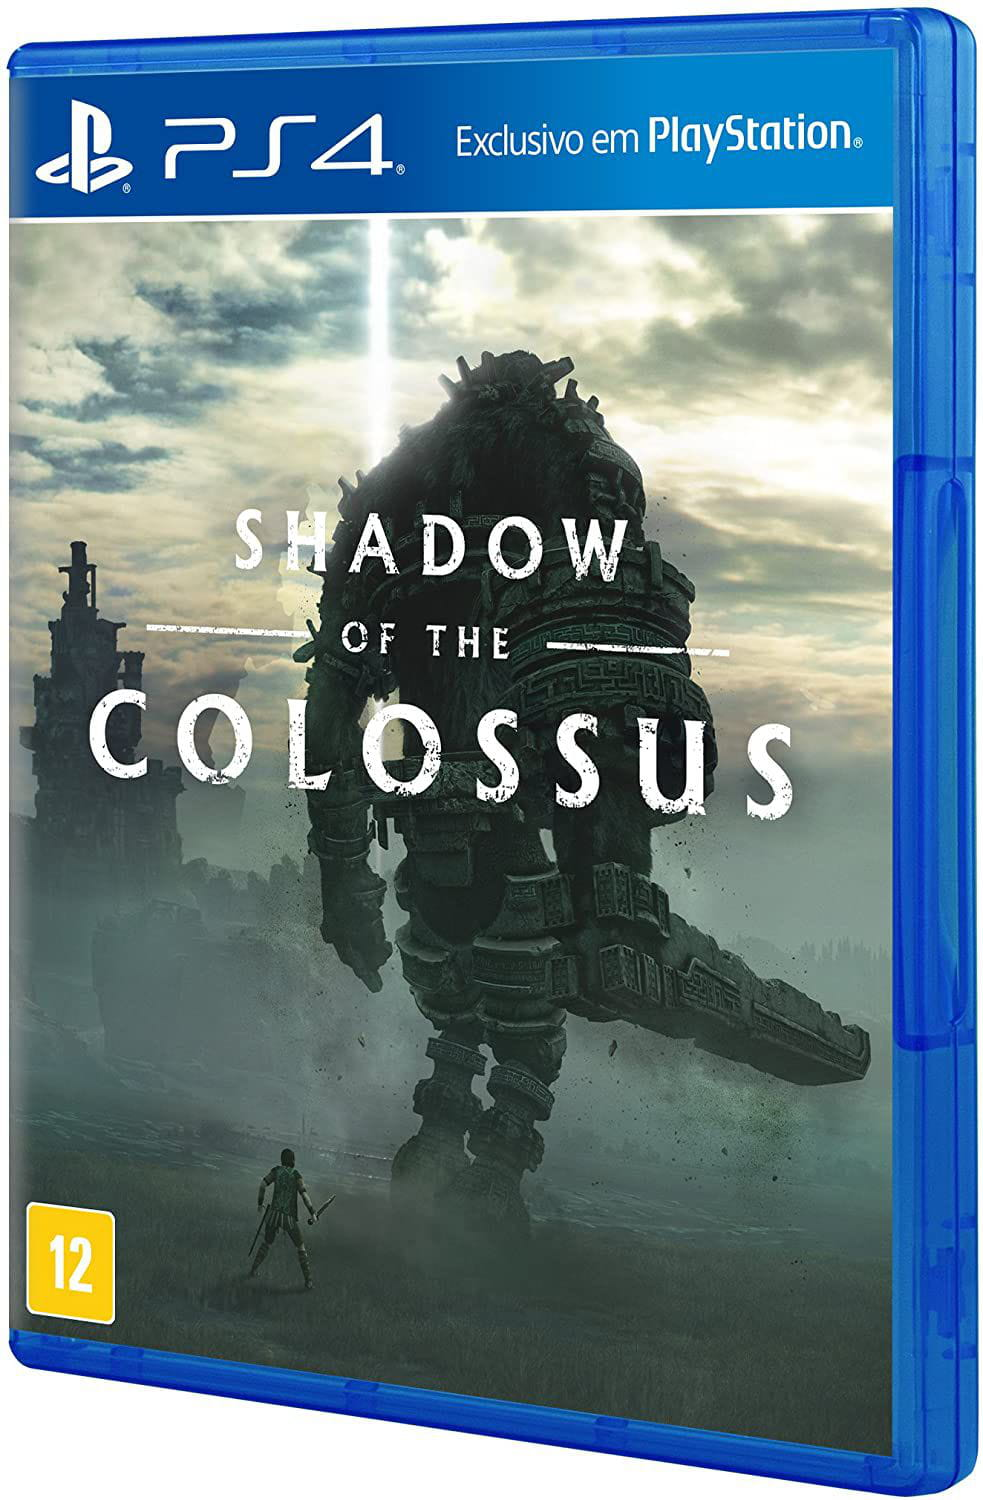 Jogo Shadow of the Colossus - PS4